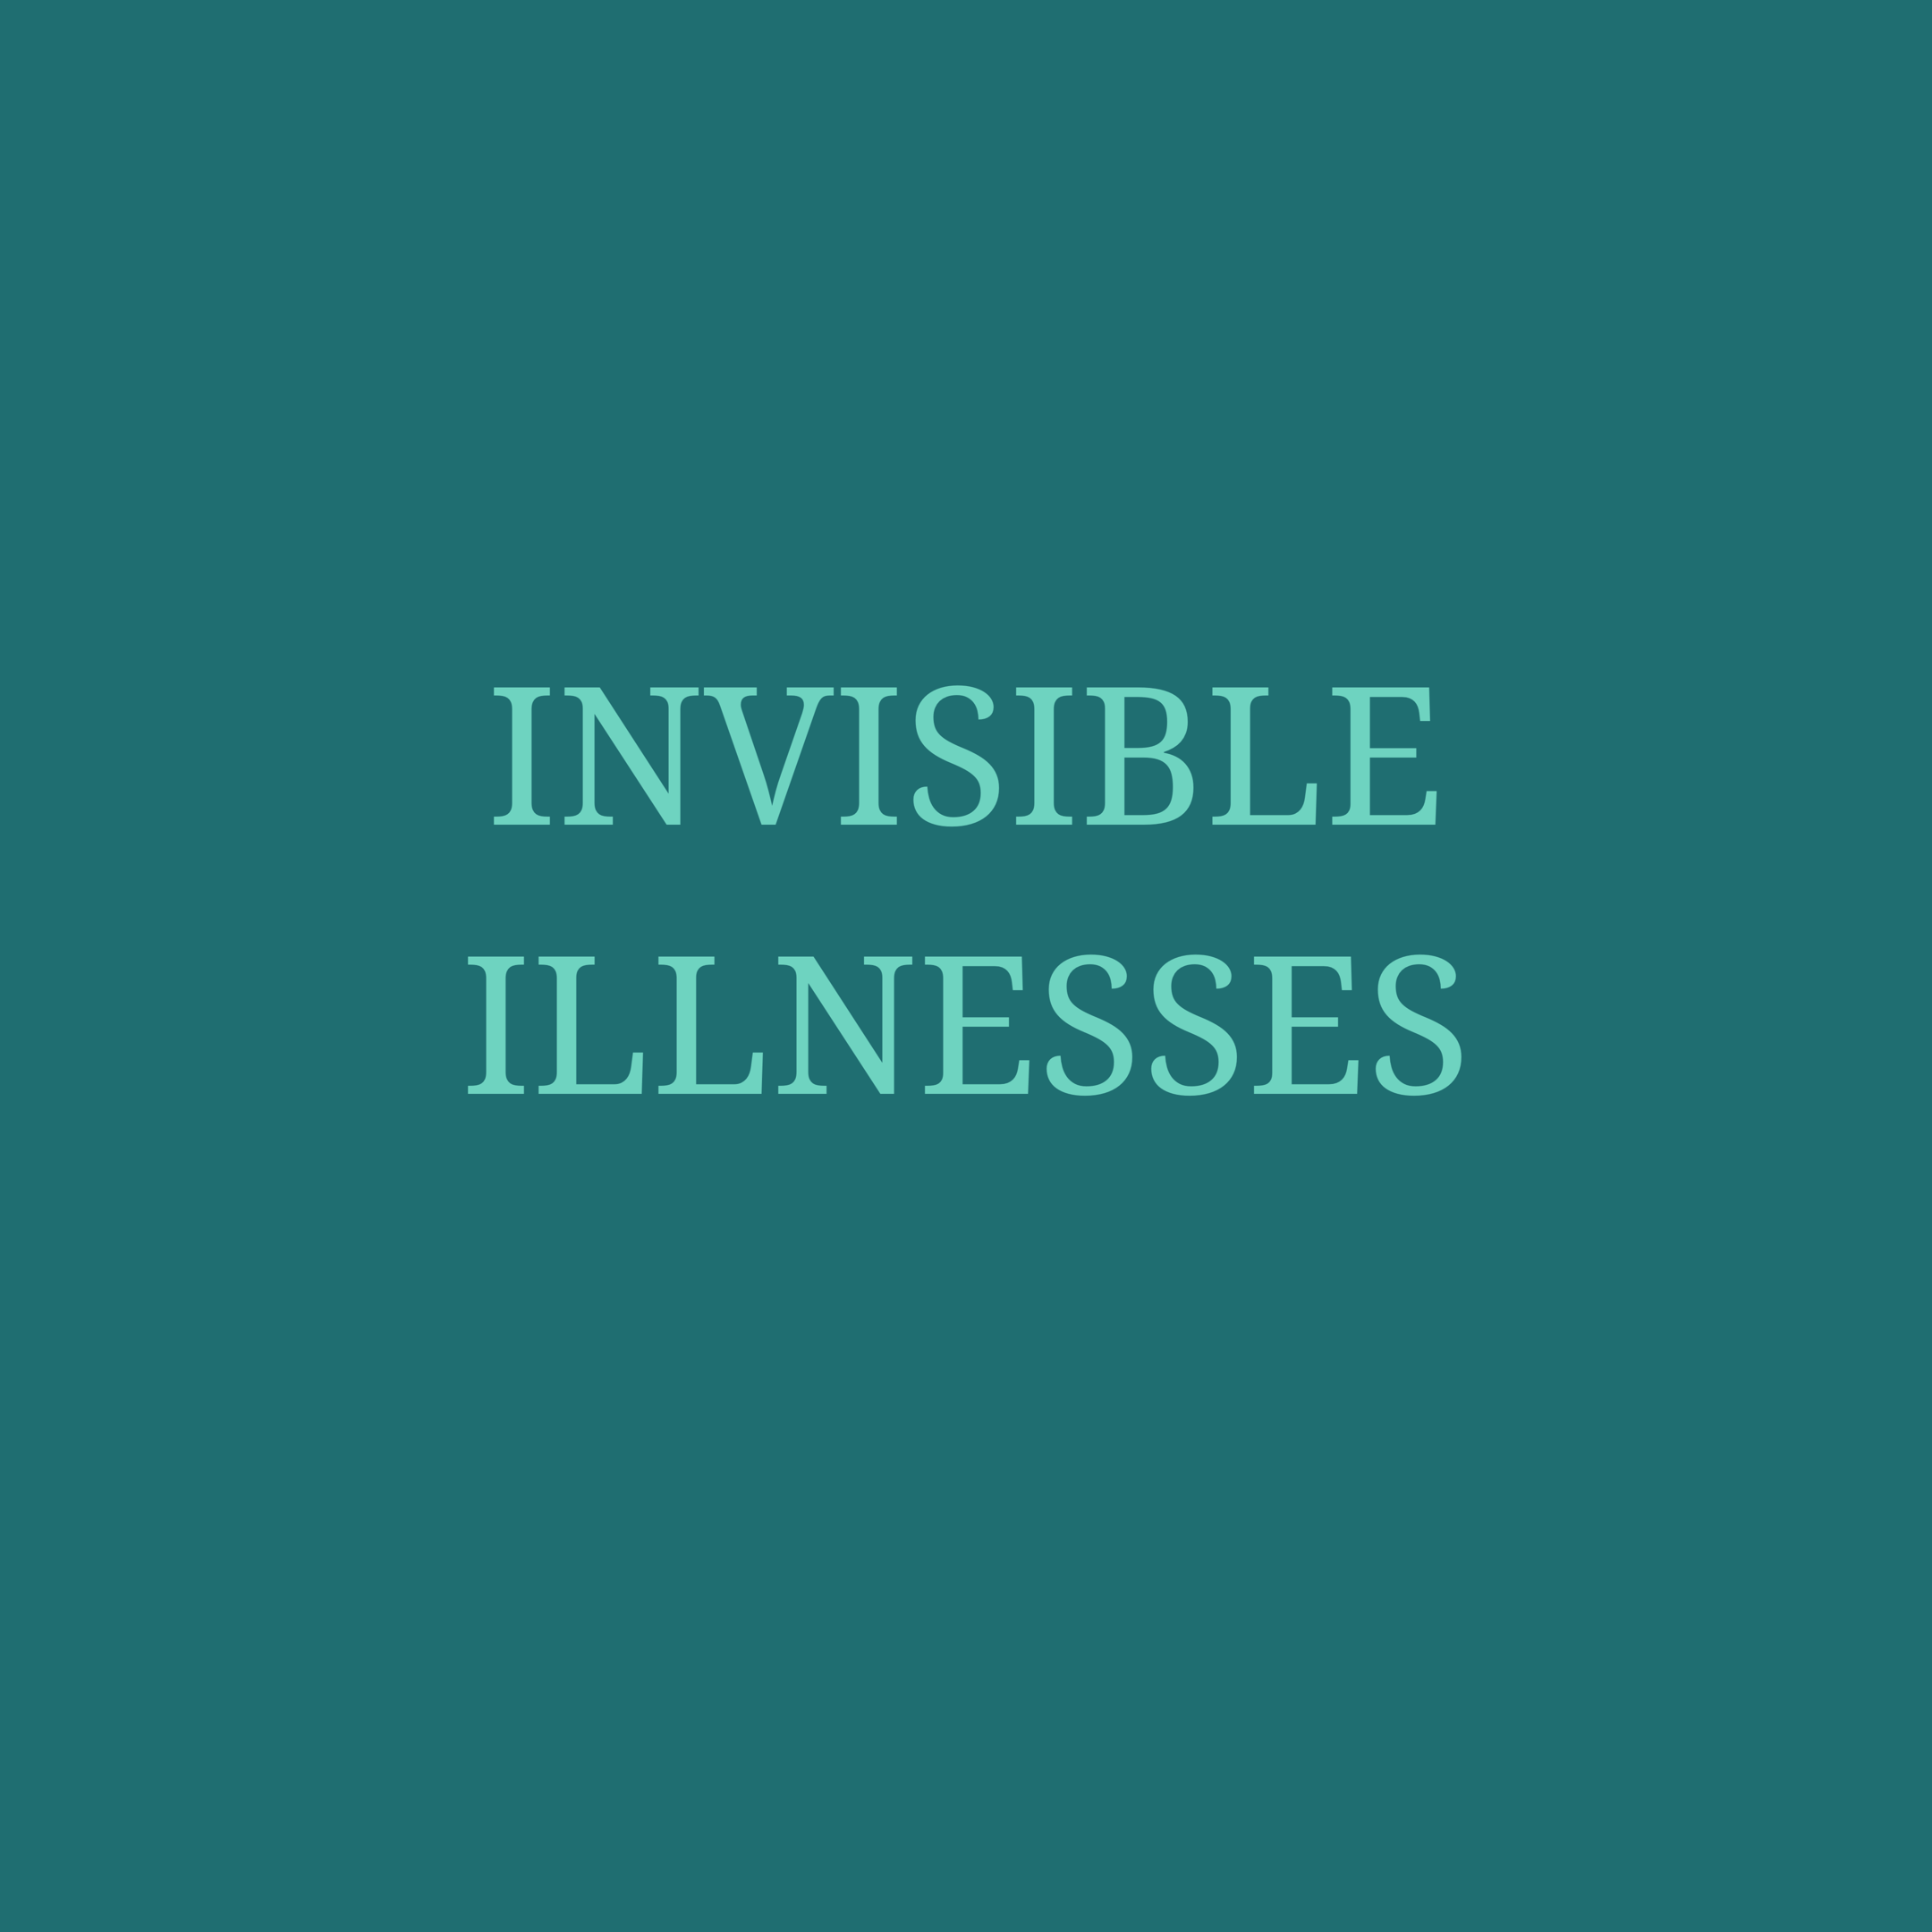 invisibleillness1.png